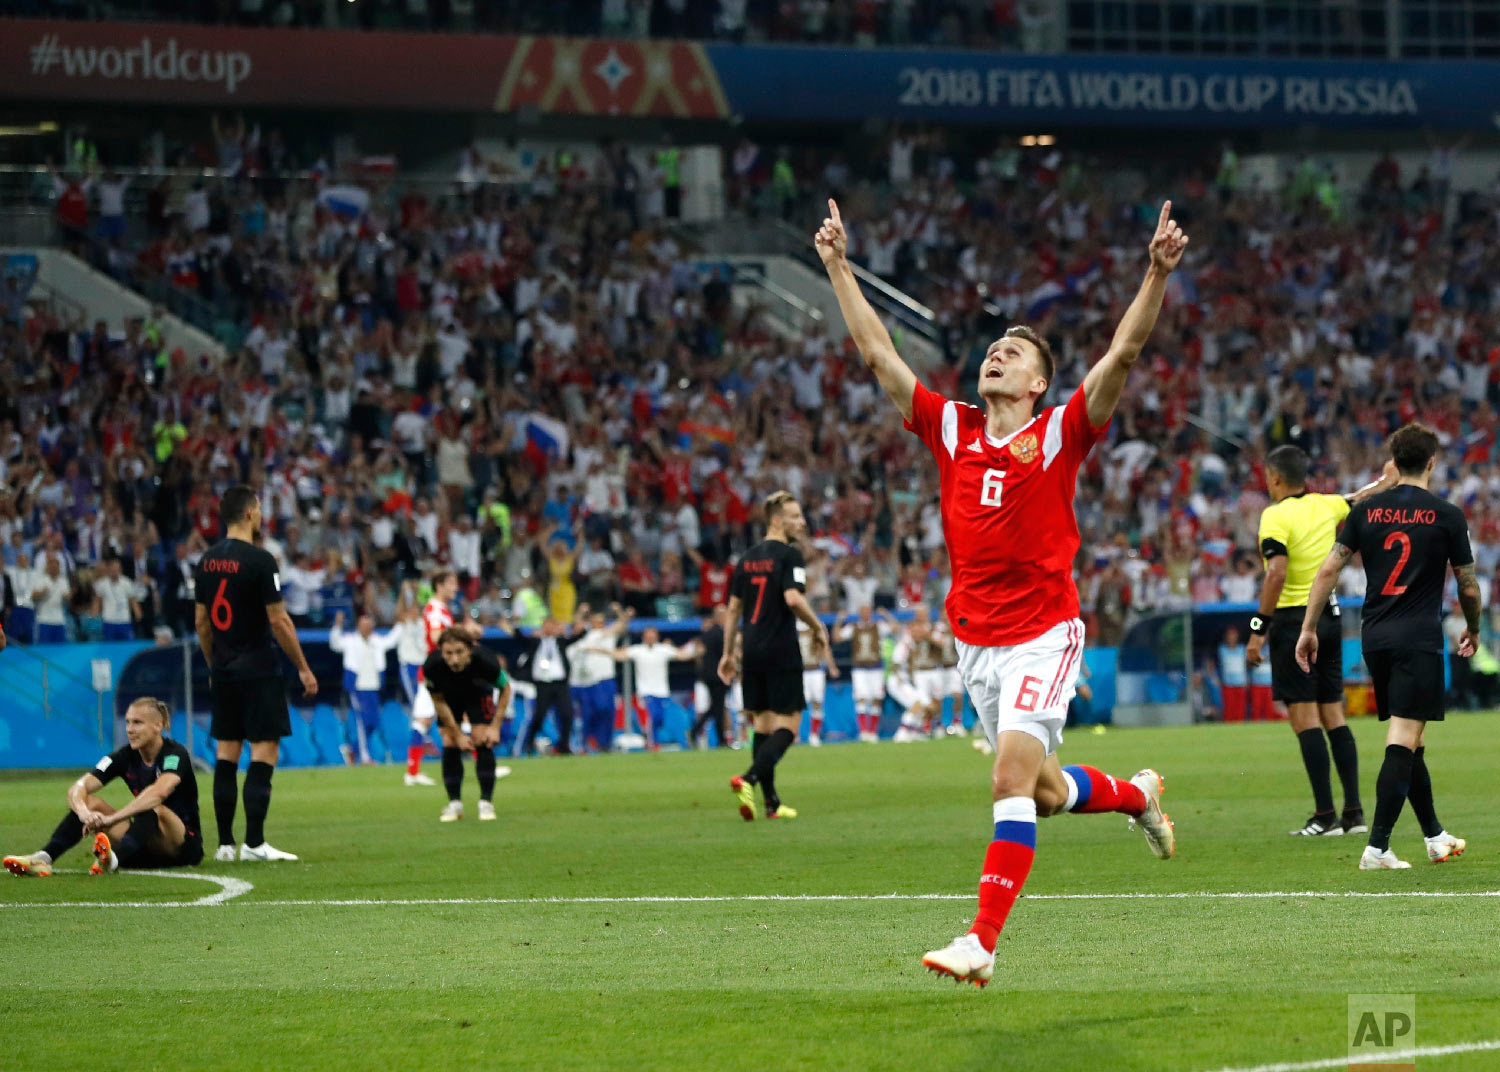 Russia's Denis Cheryshev celebrates after scoring his side's first goal during the quarterfinal match between Russia and Croatia at the 2018 soccer World Cup in the Fisht Stadium, in Sochi, Russia, Saturday, July 7, 2018. (AP Photo/Pavel Golovkin)